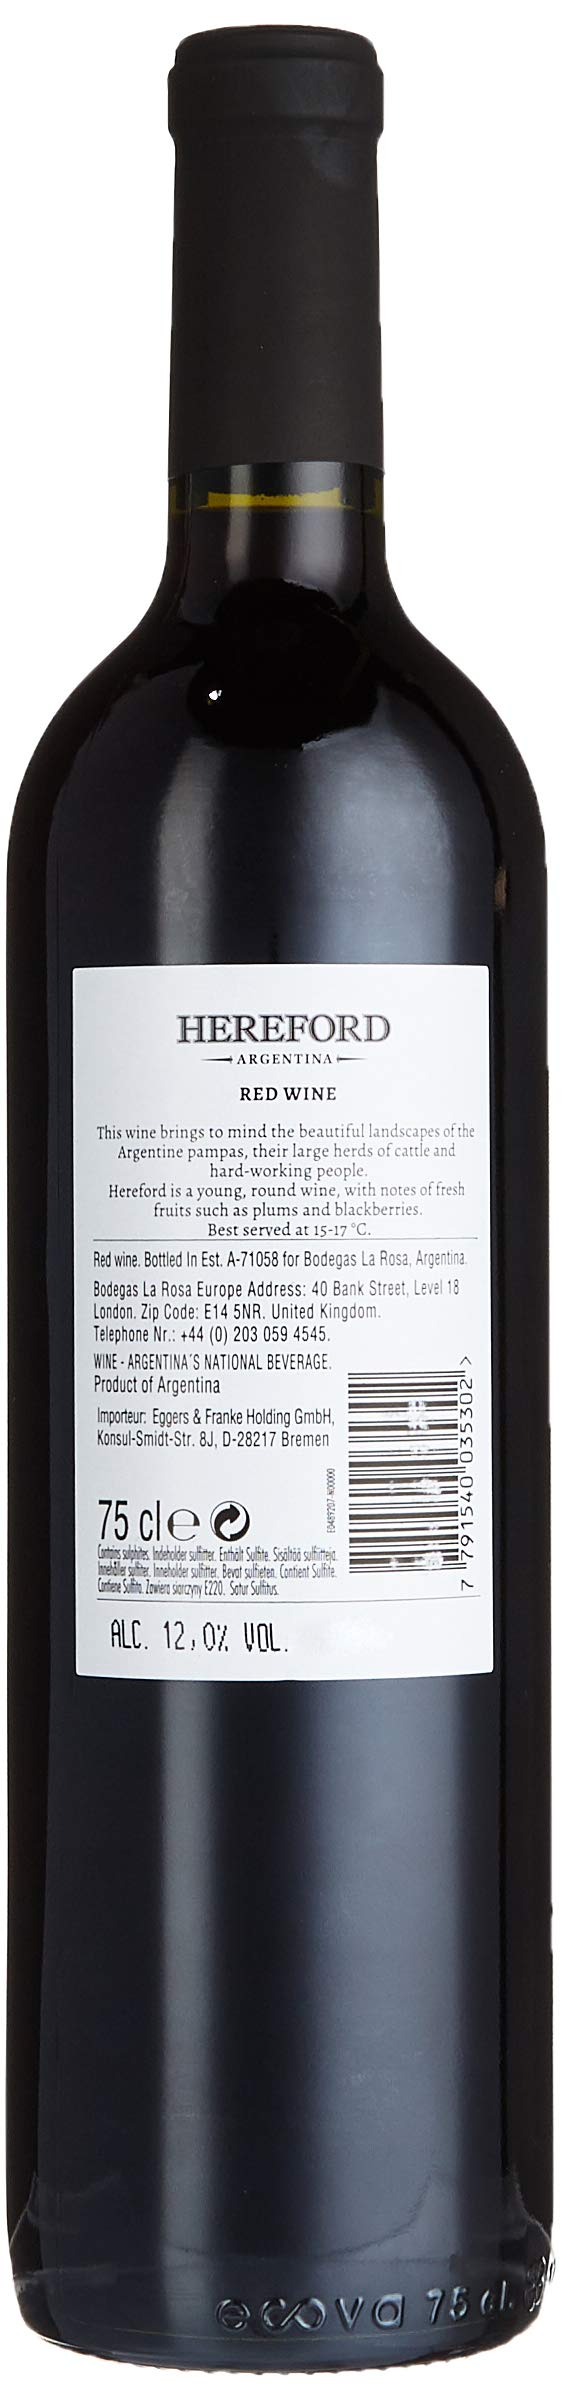 Hereford-Red-Cuve-Trocken-6-x-075-l